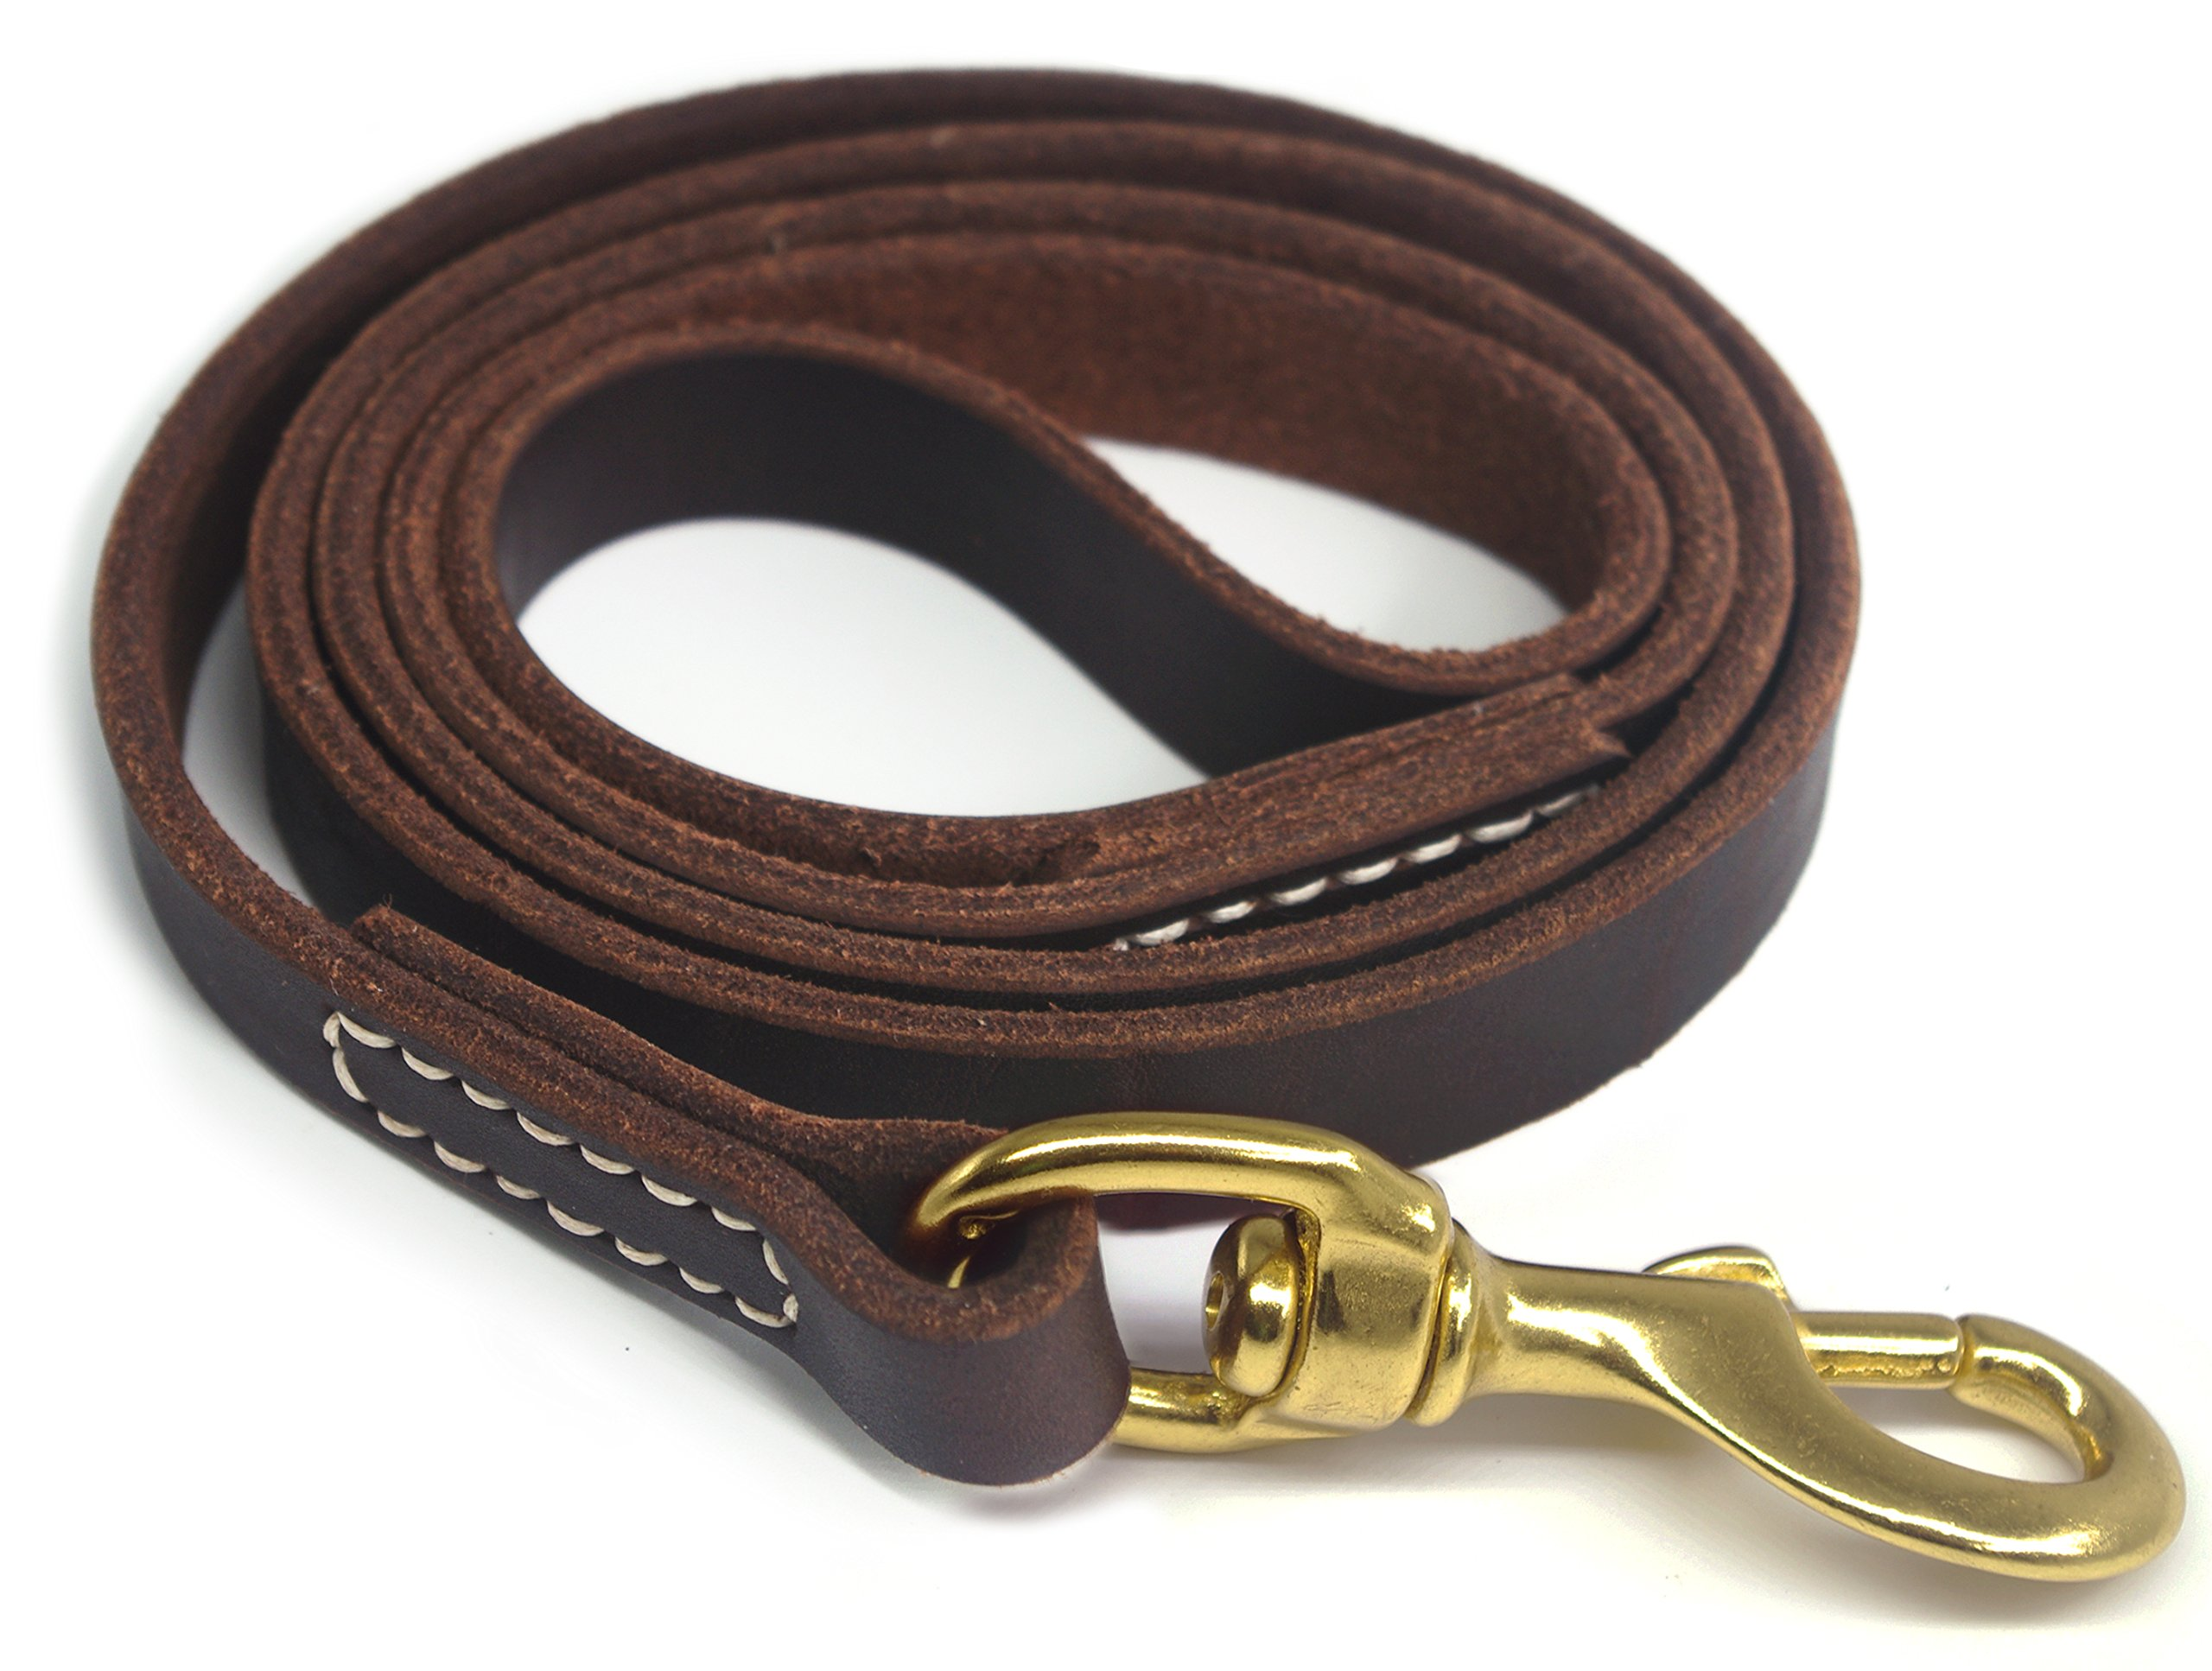 YOGADOG Genuine Leather Dog Training Leash. 4/6 ft Length 3/5 inch Width for Medium and Large Dogs.(4 feet) by YOGADOG